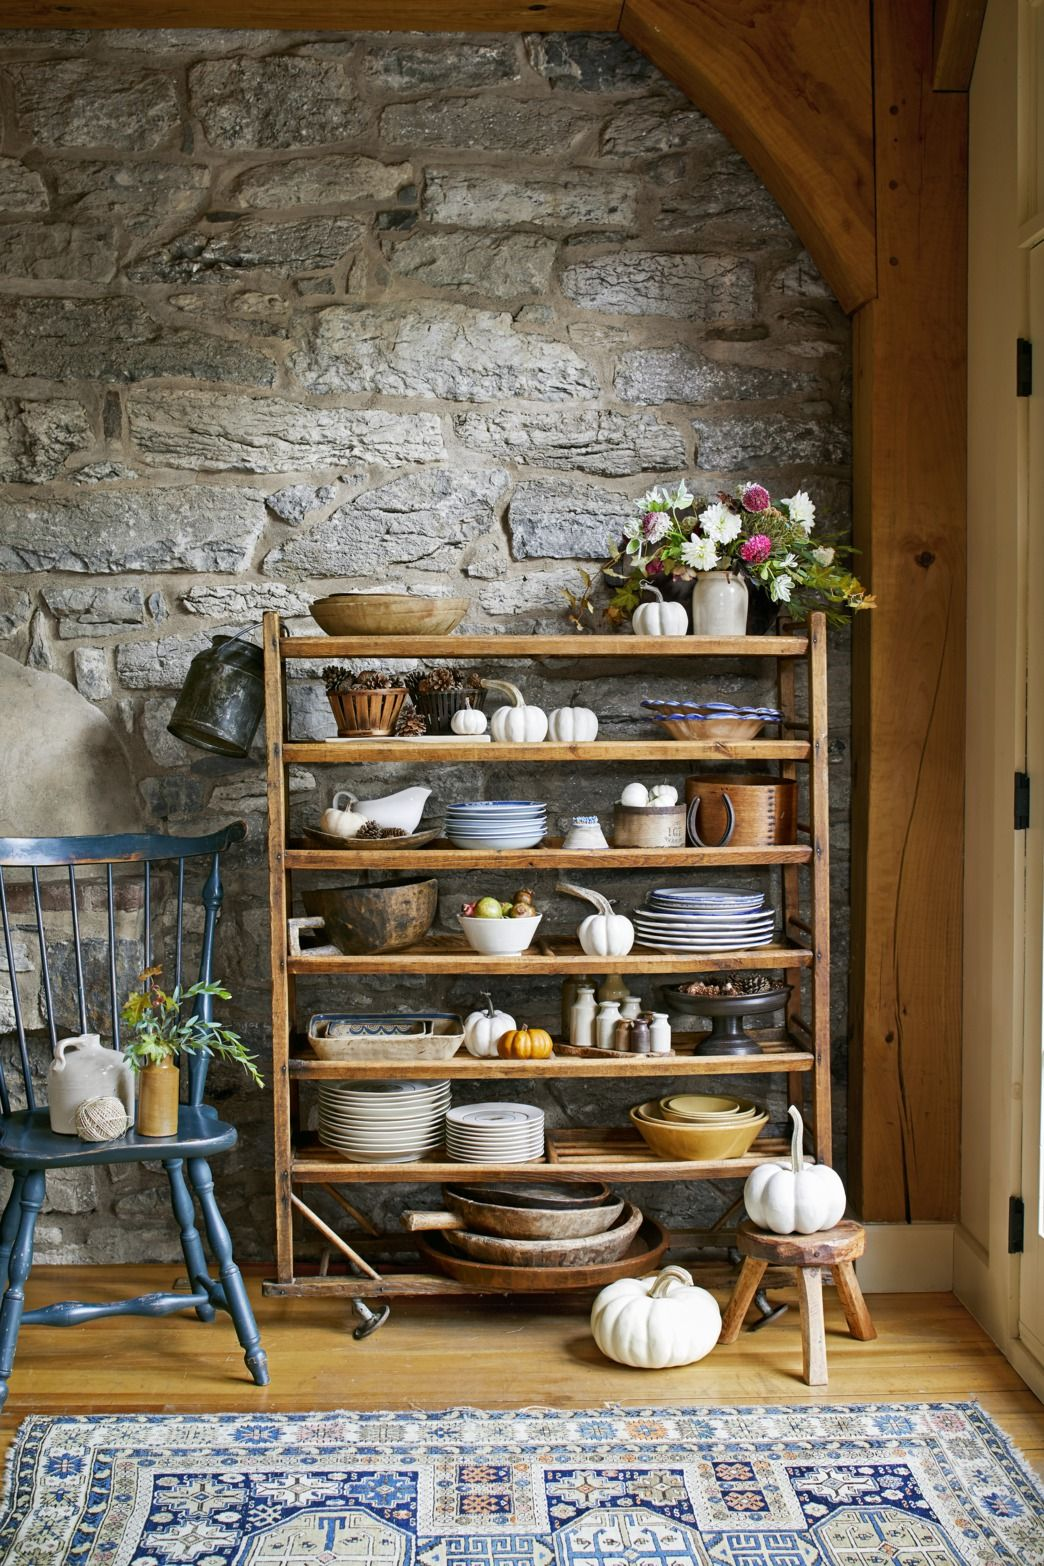 53 Easy Fall Decorating Ideas - Autumn Decor Tips to Try